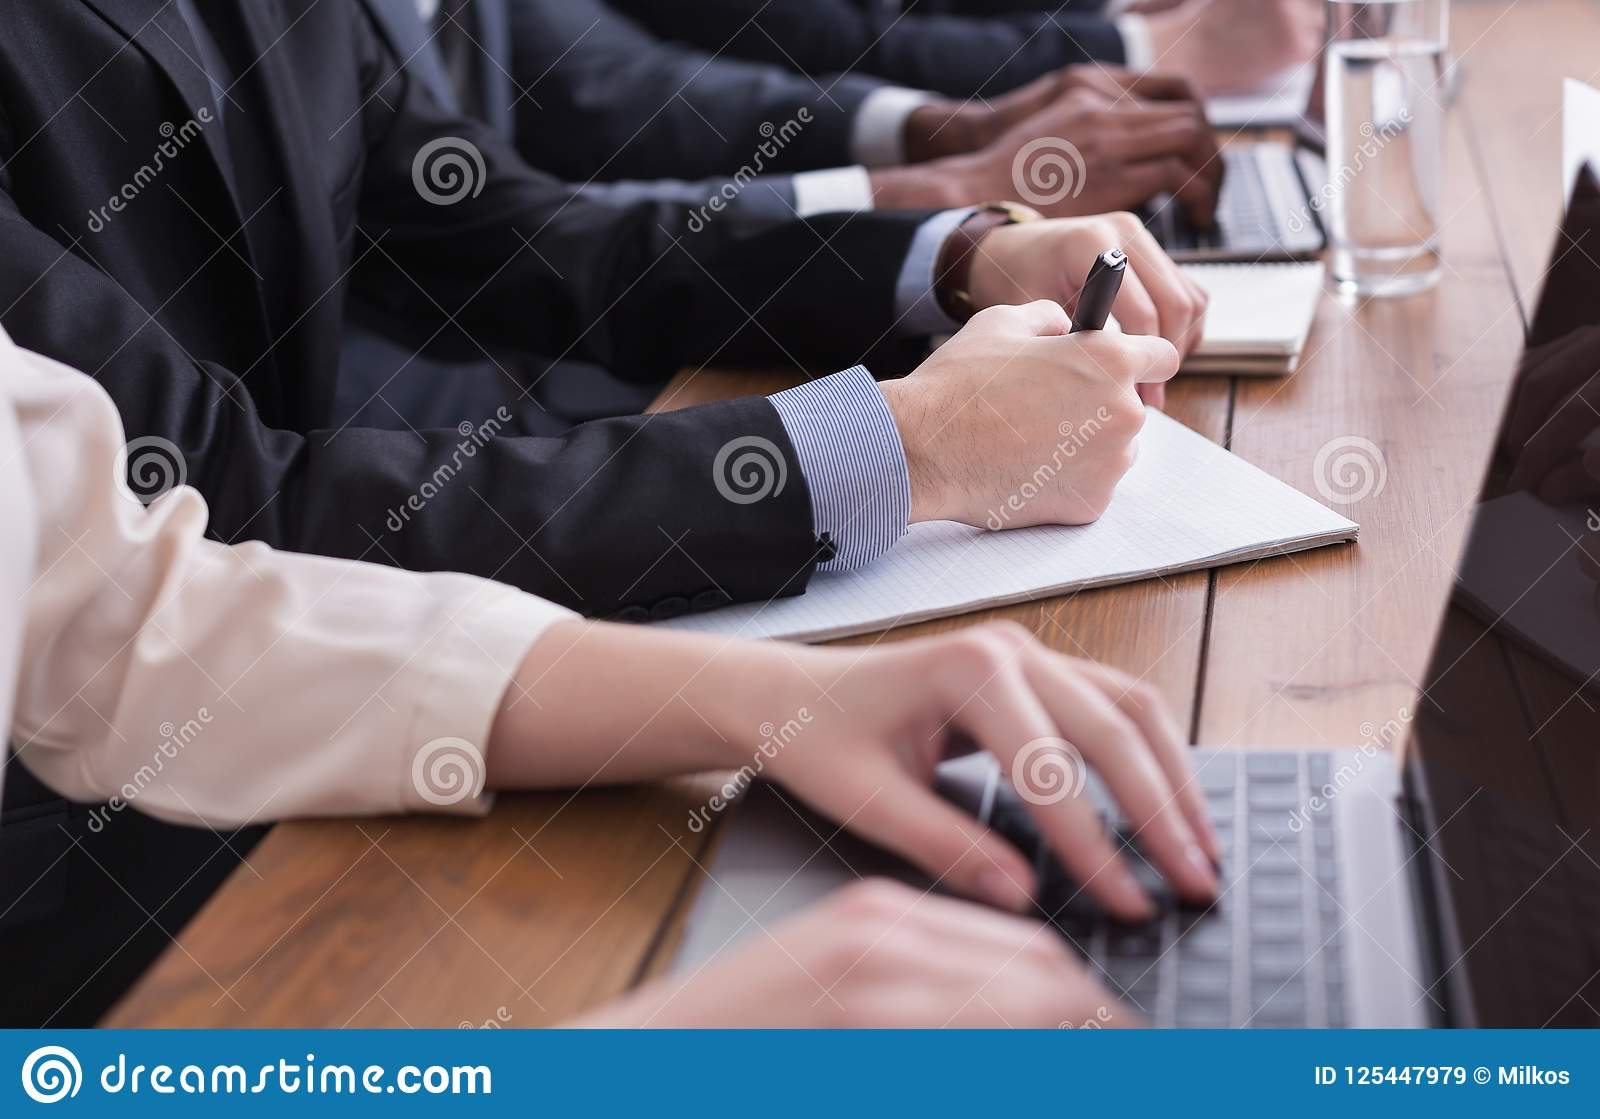 Businessman in suit putting signature on contract